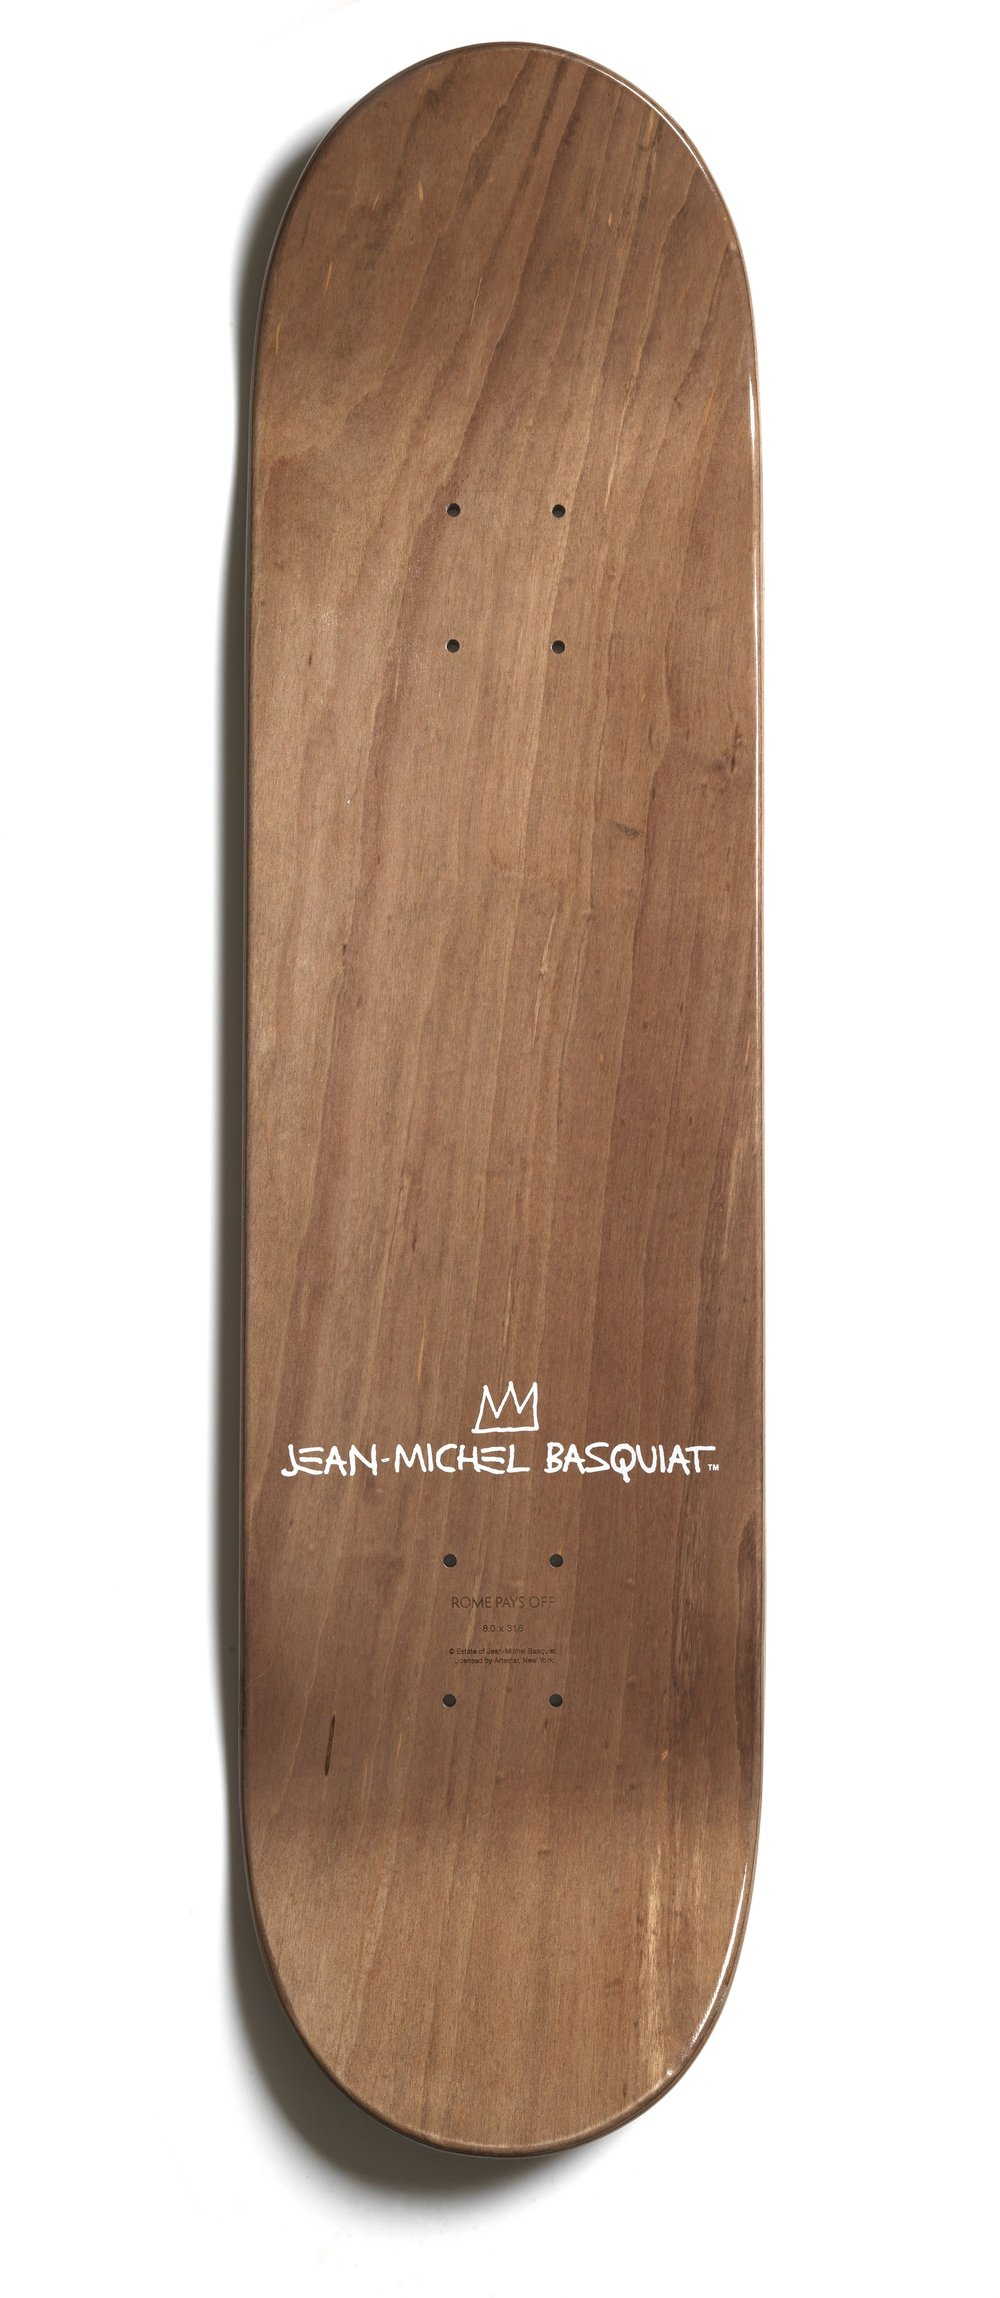 BASQUIAT - BOONE MONA LISA SKATEBOARD - £150 - IMAGE 1 - BROWNS FASHION.jpg